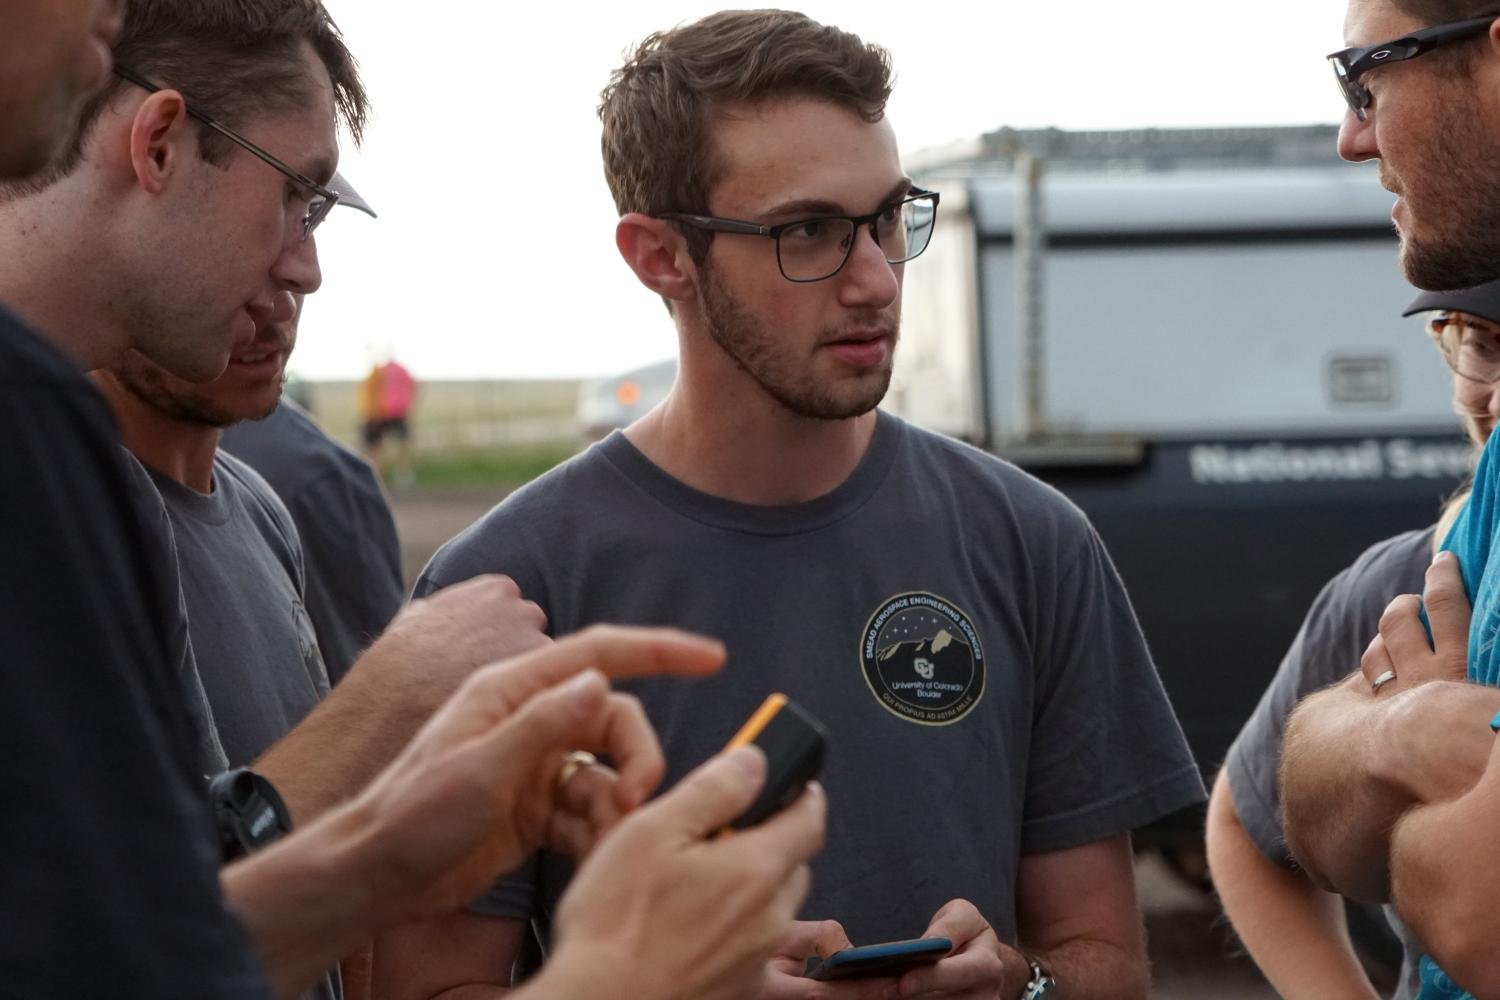 Students talking between deployments of the drone